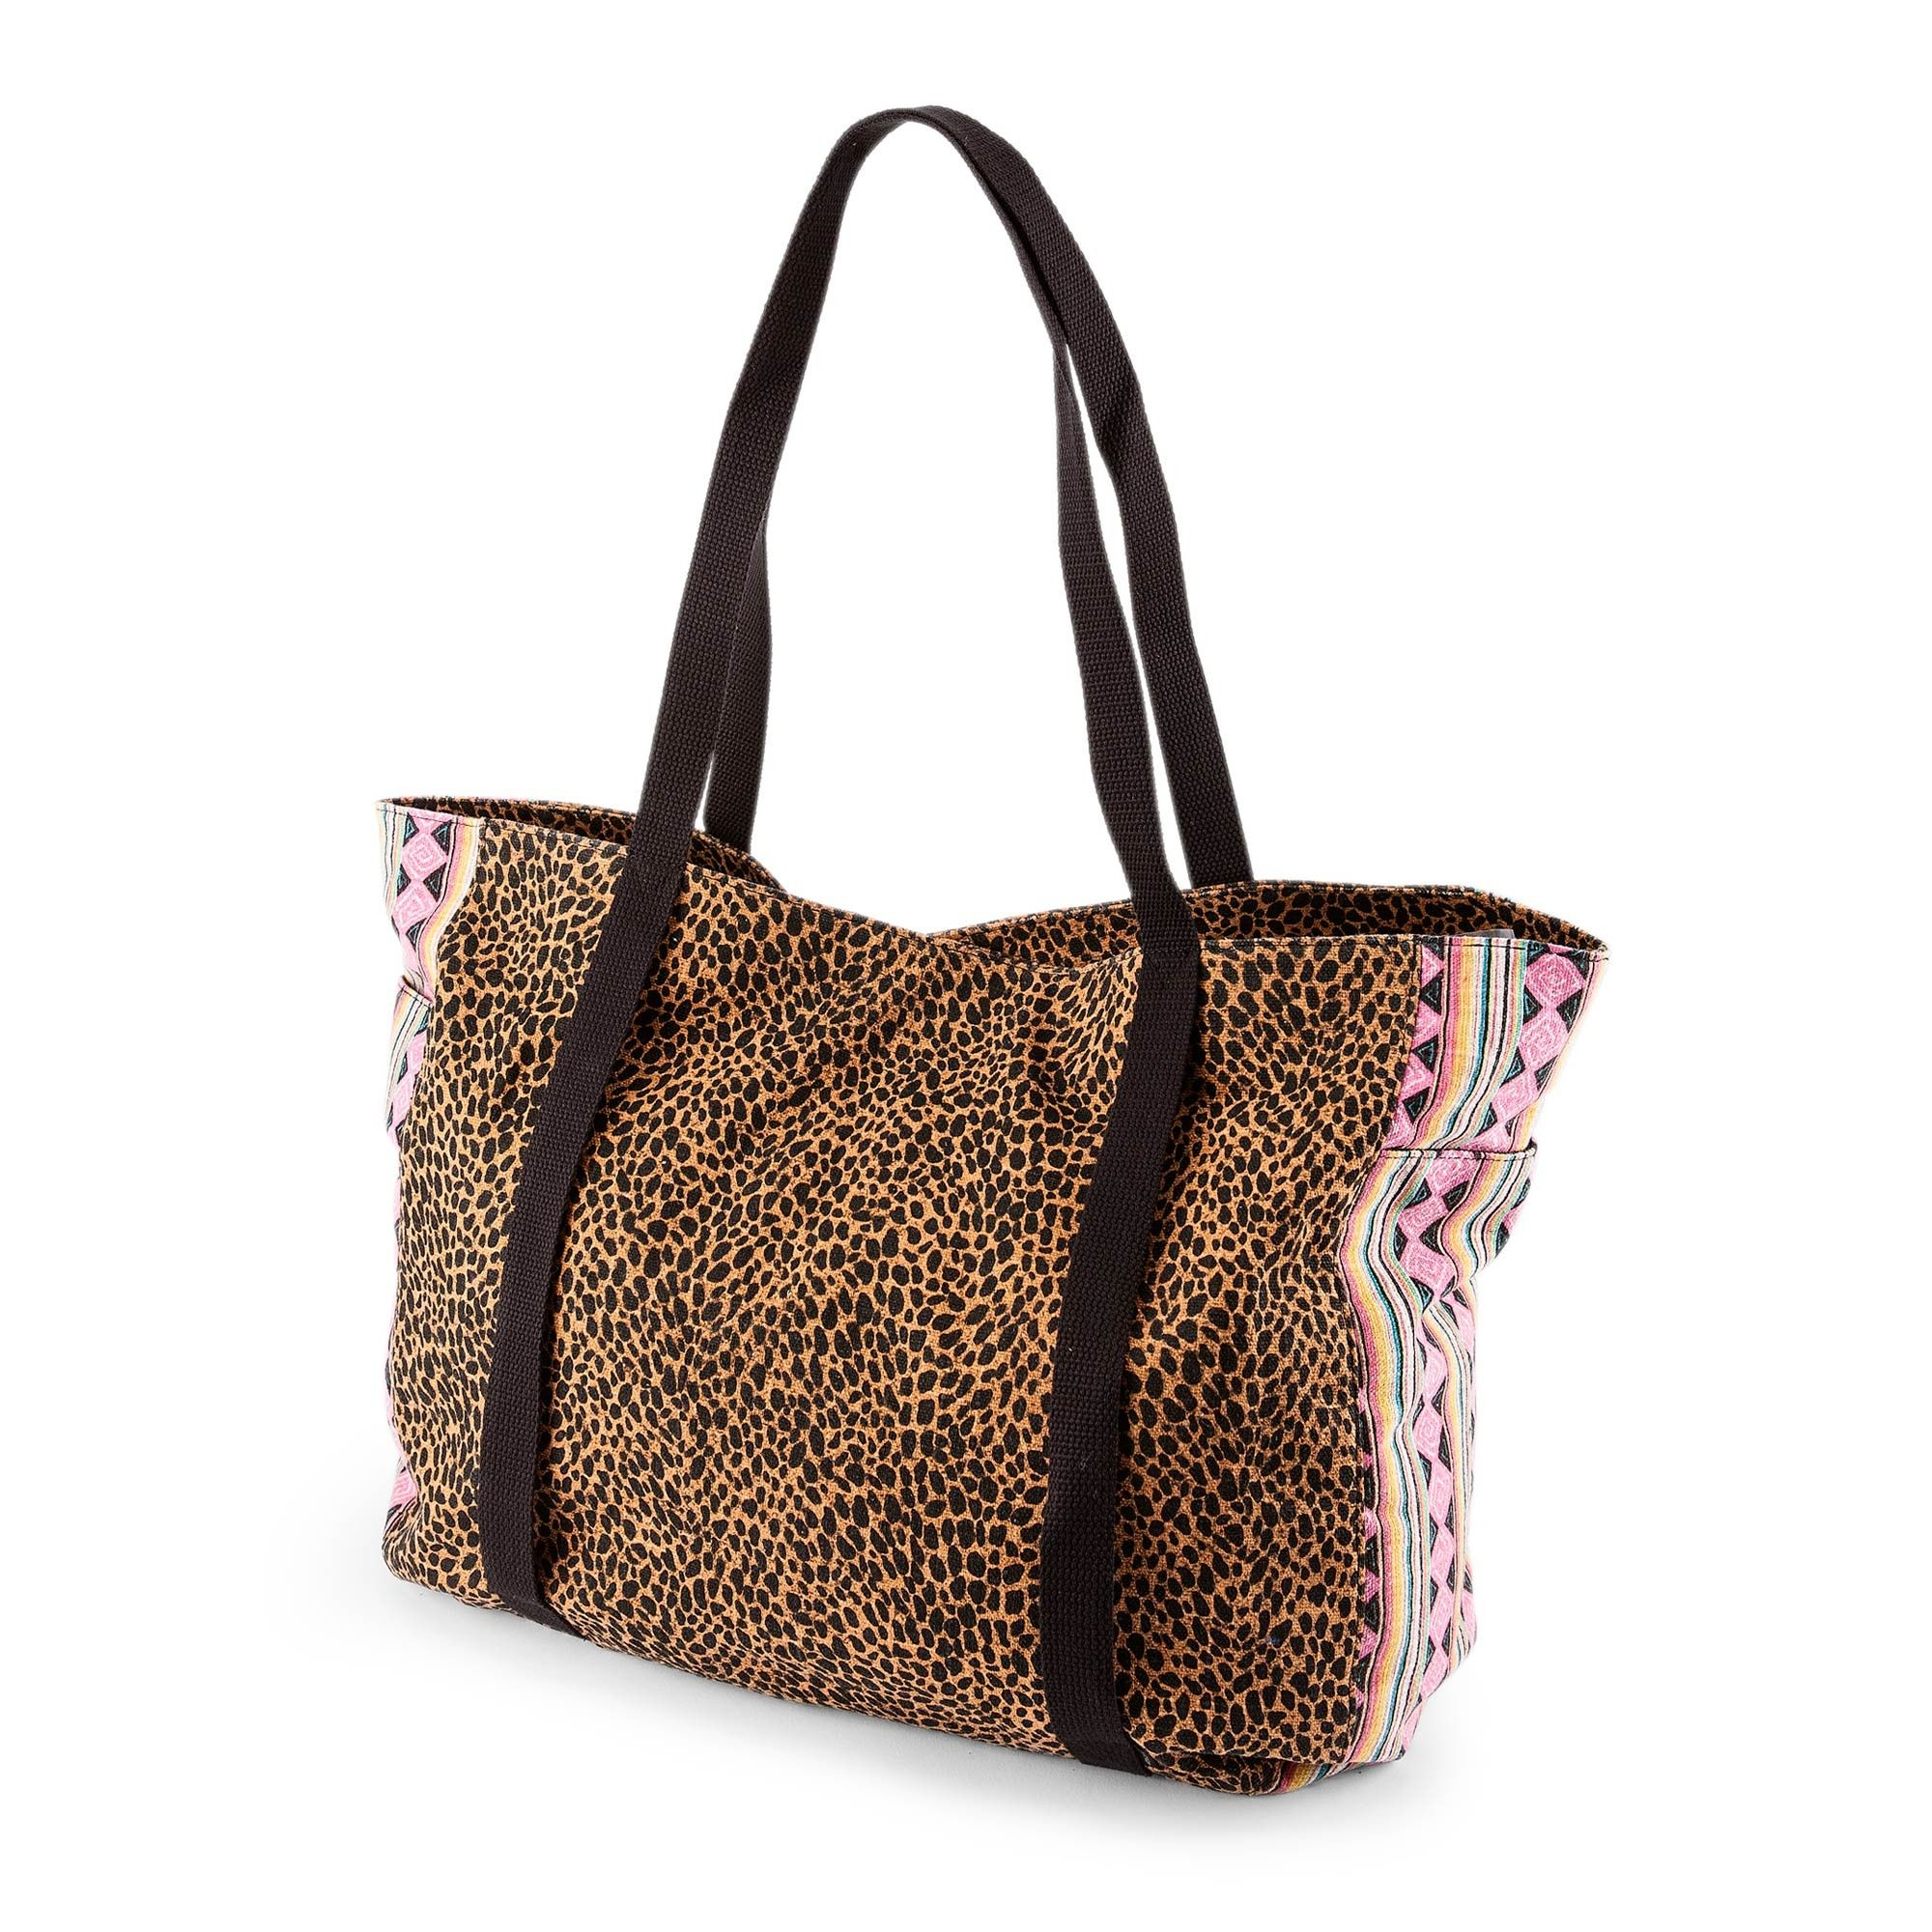 Absolutely Shore Tote $45.00